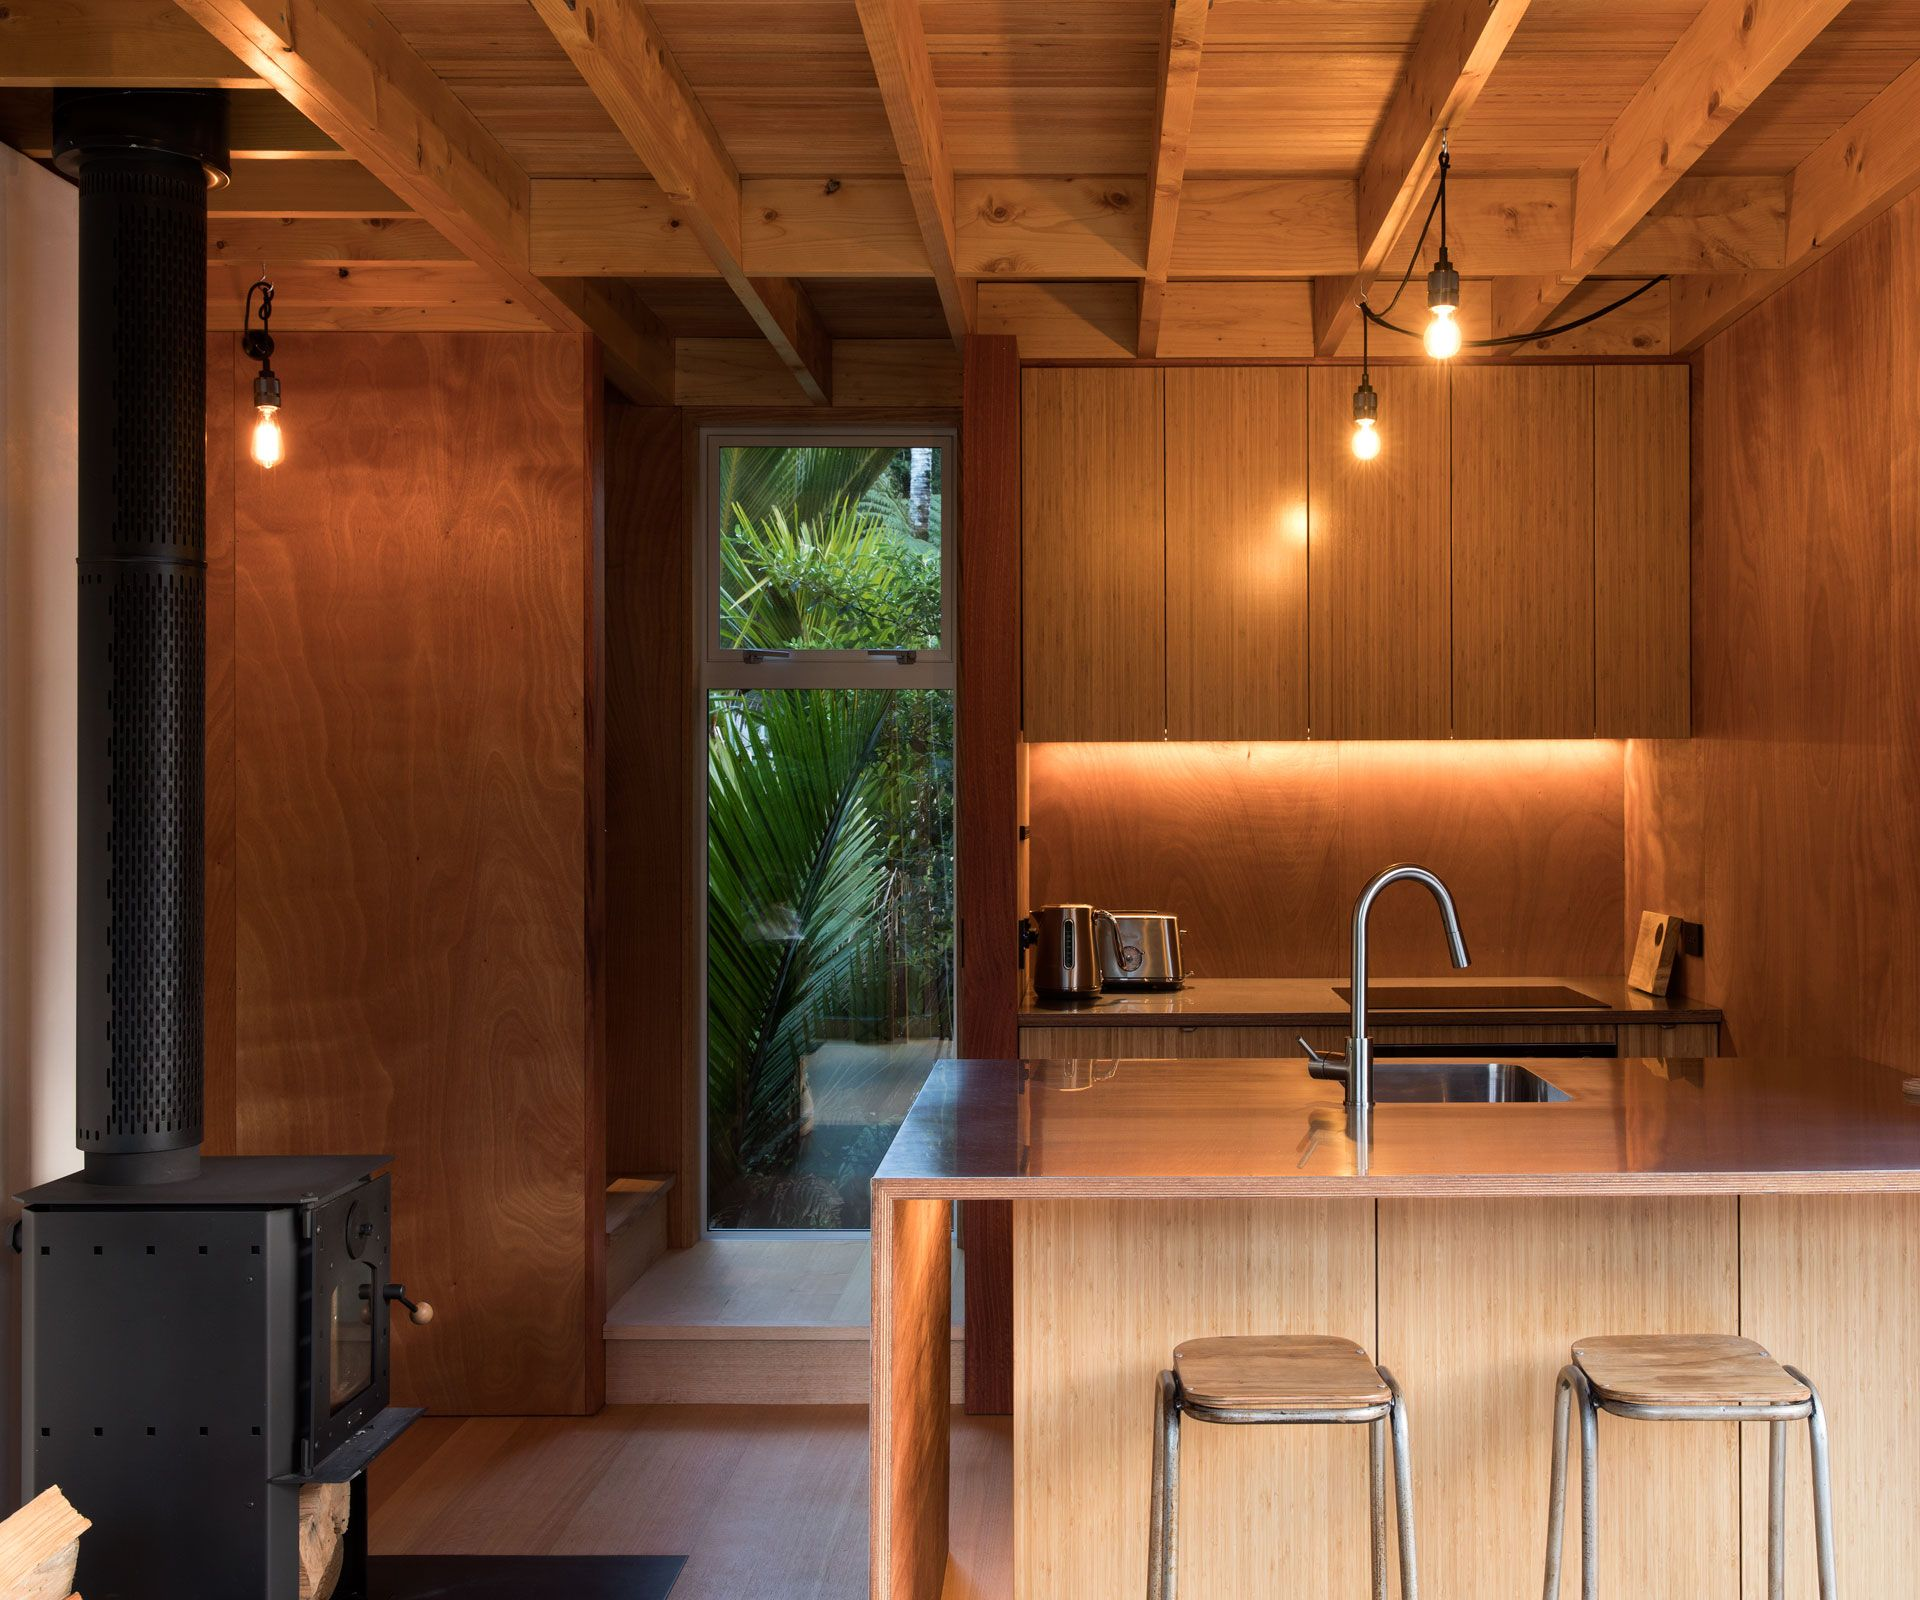 Küchendesign für bungalowhaus this tiny squaremetre home has the most inspiring design  tiny